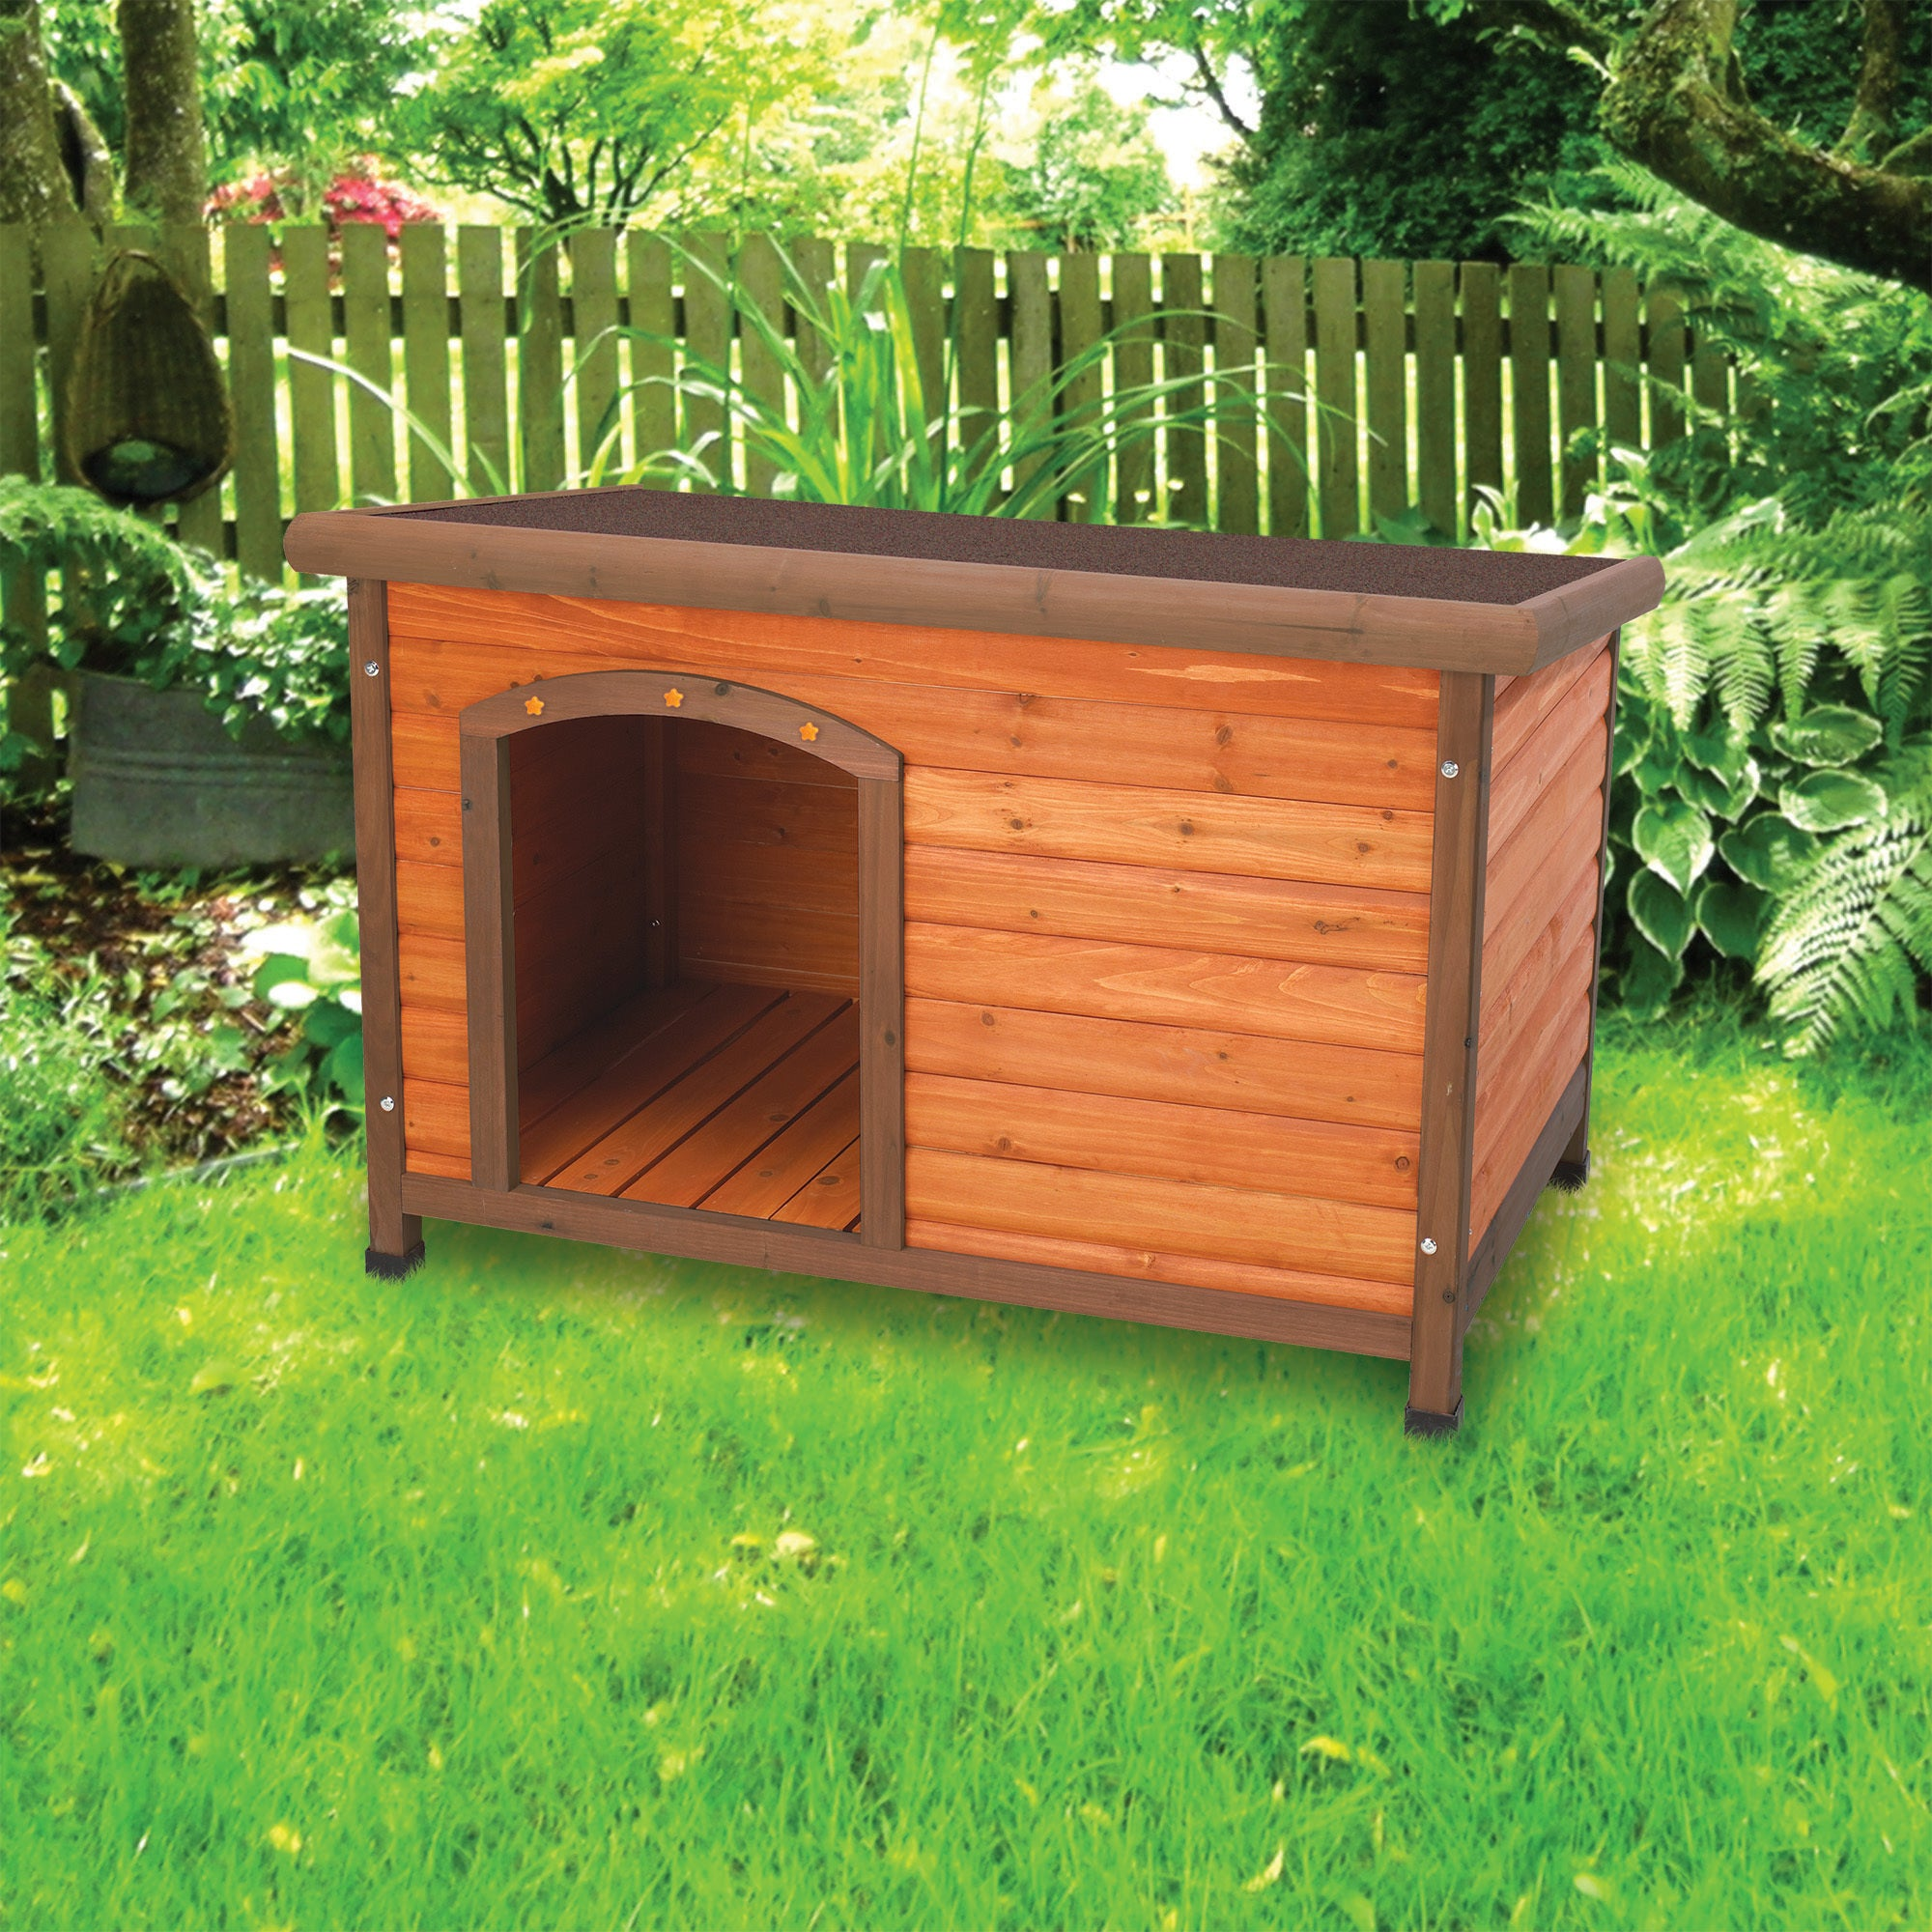 Ware Premium+ Dog house, Medium (Medium), Brown